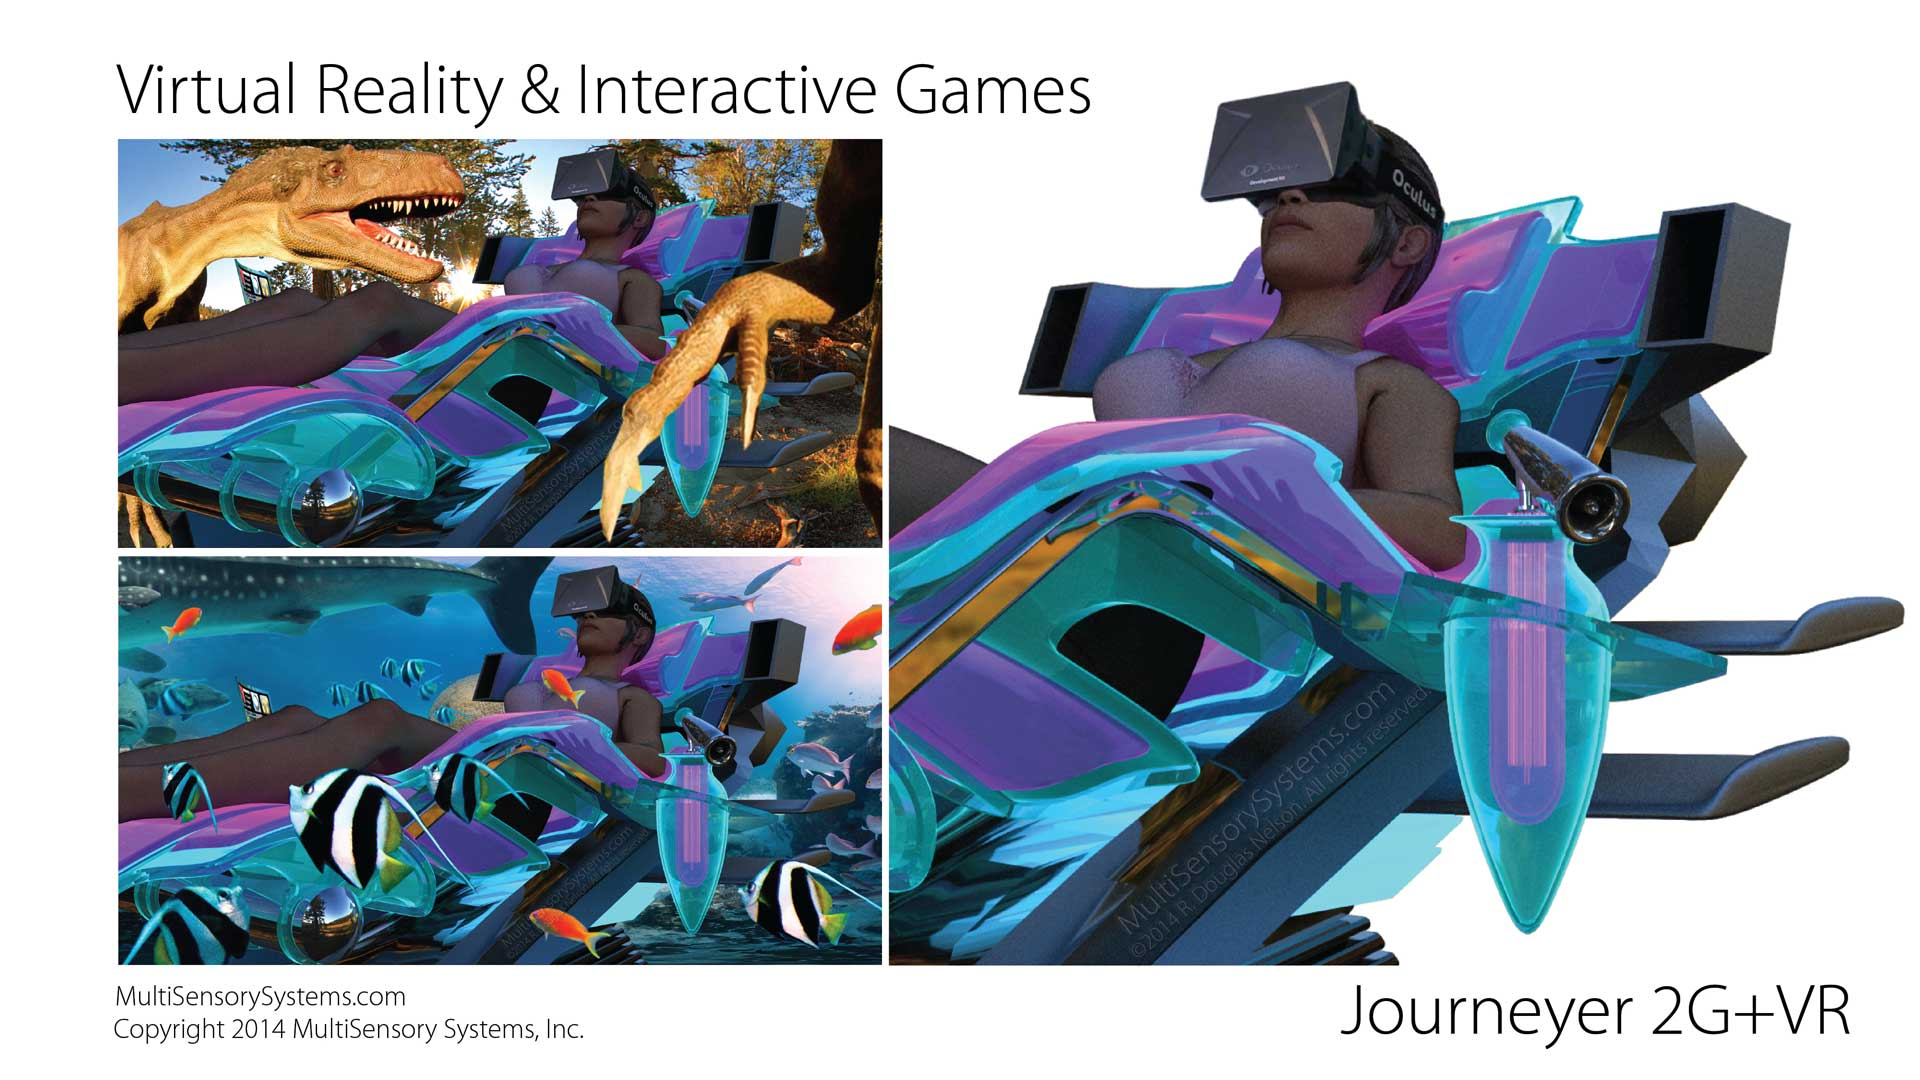 Virtual Reality & Interactive Games